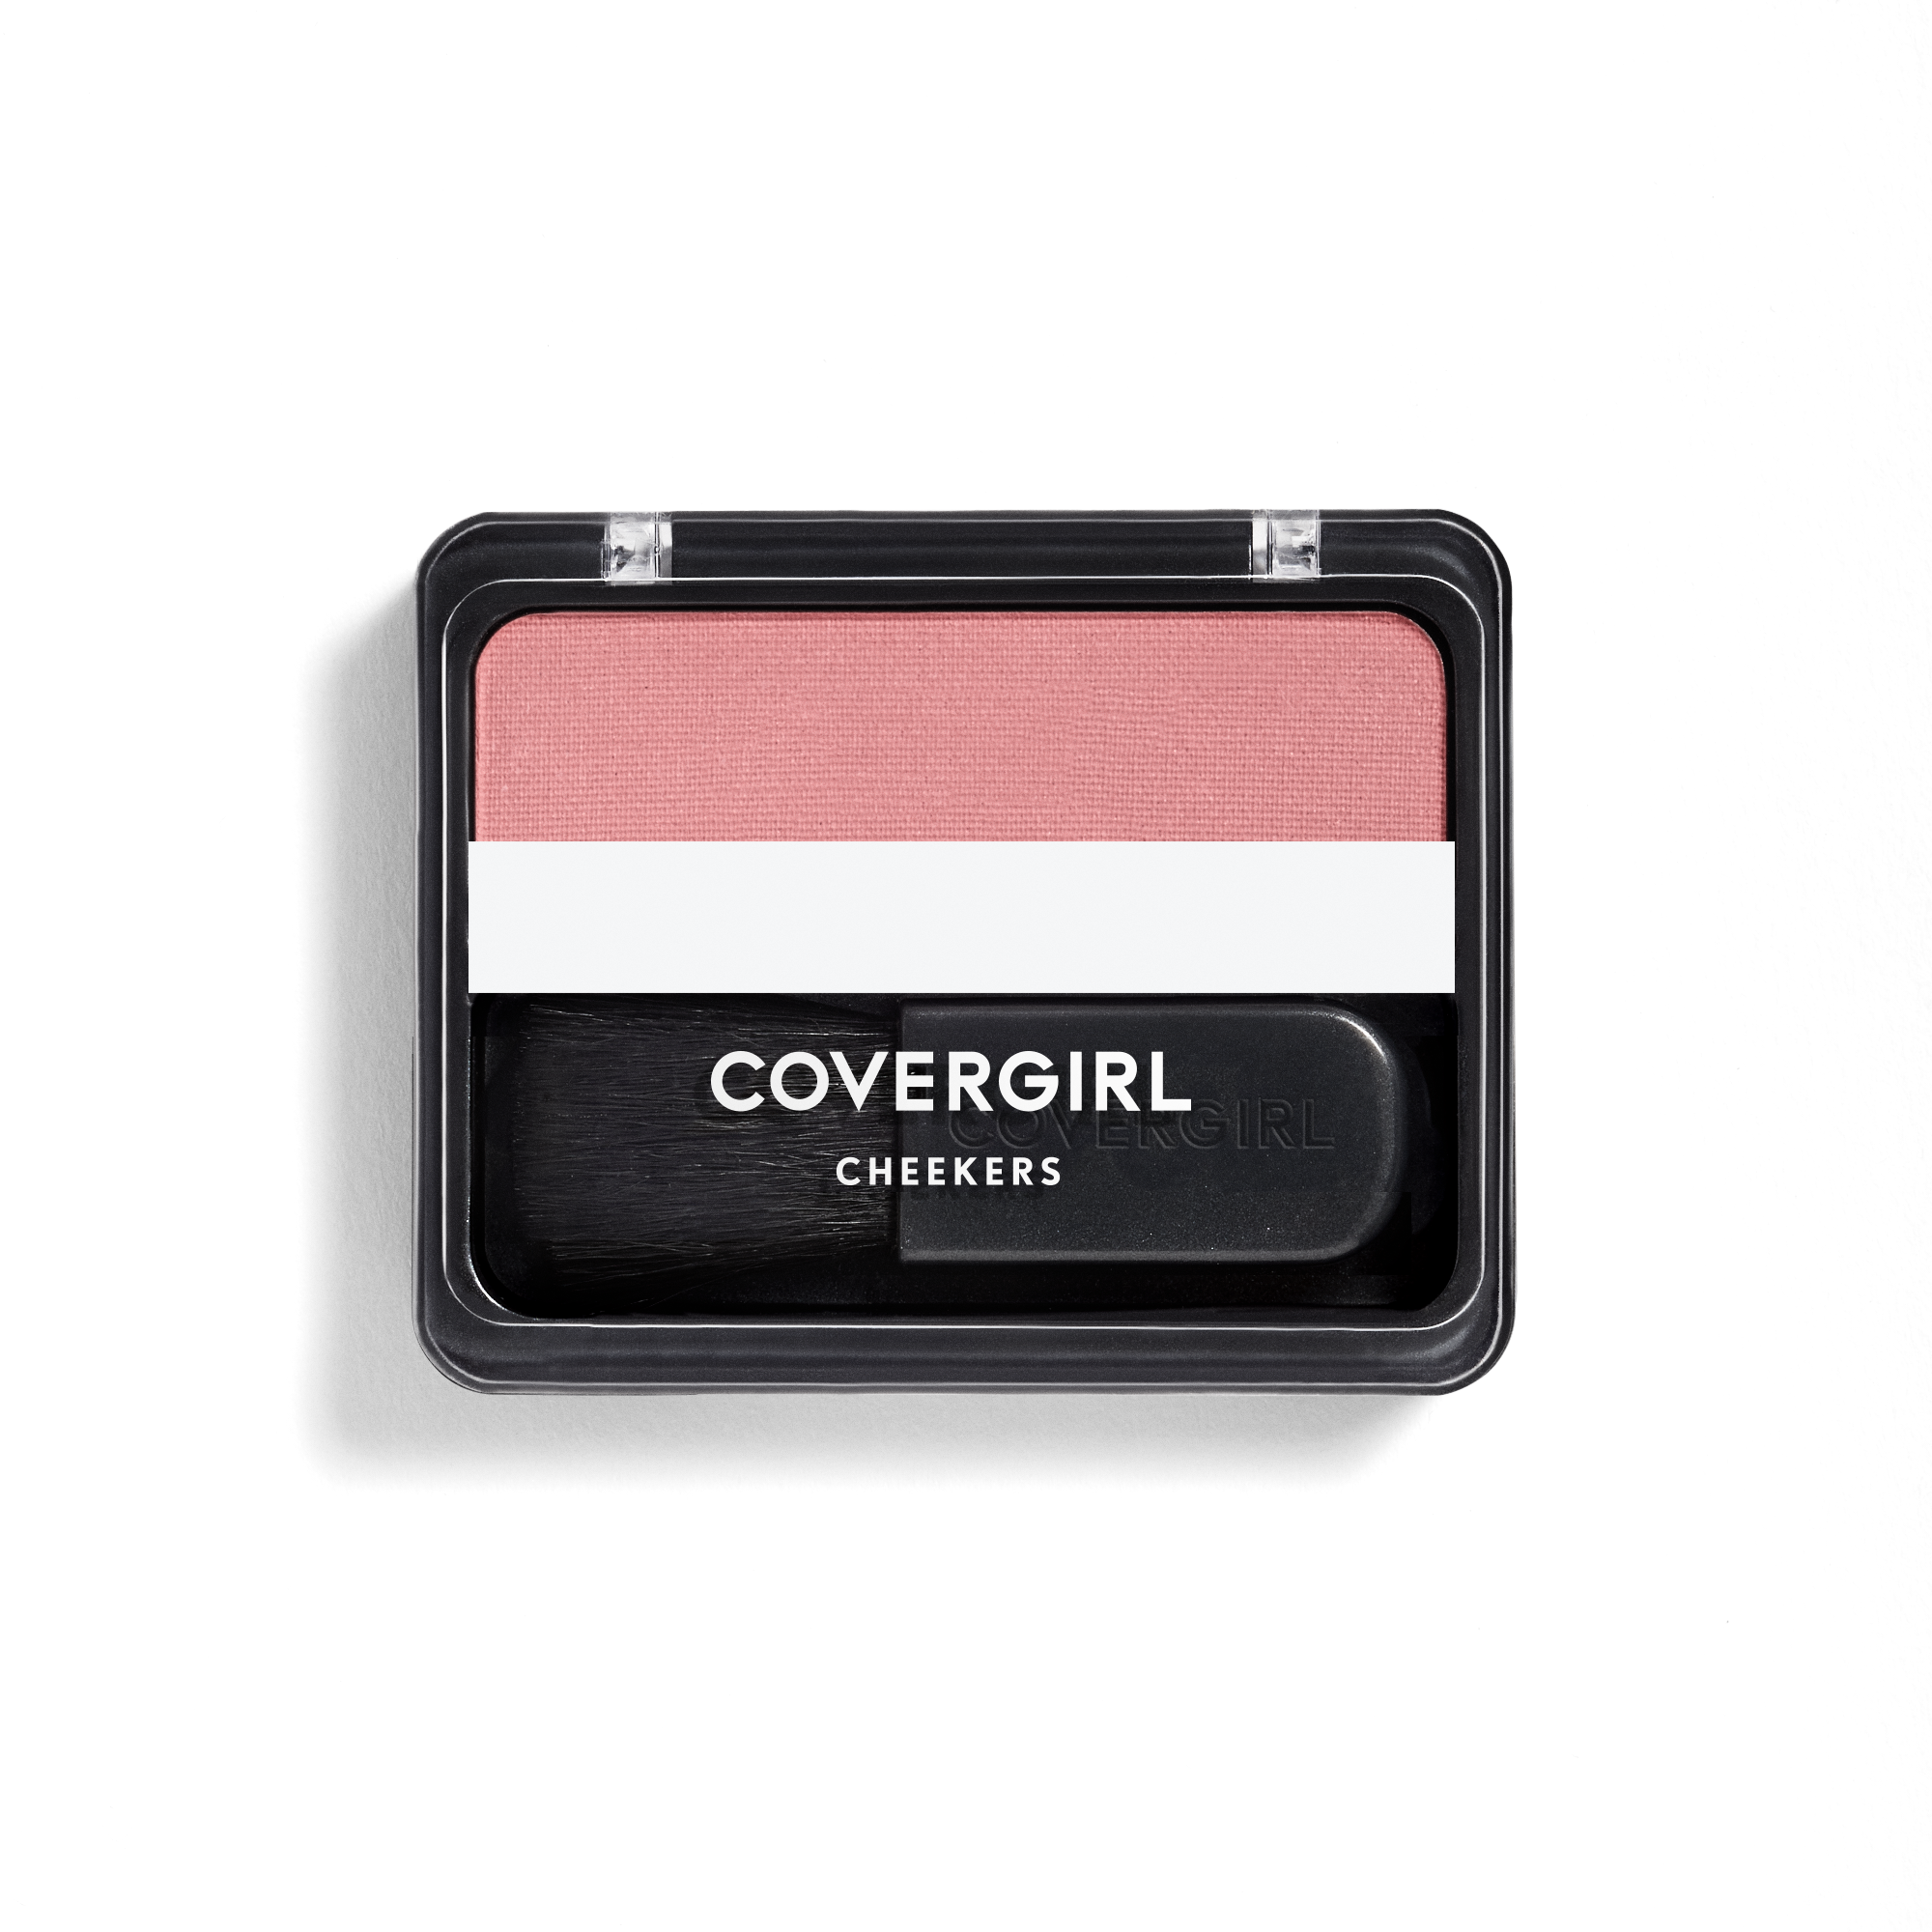 COVERGIRL Classic Color Powder Blush, 570 Natural Glow